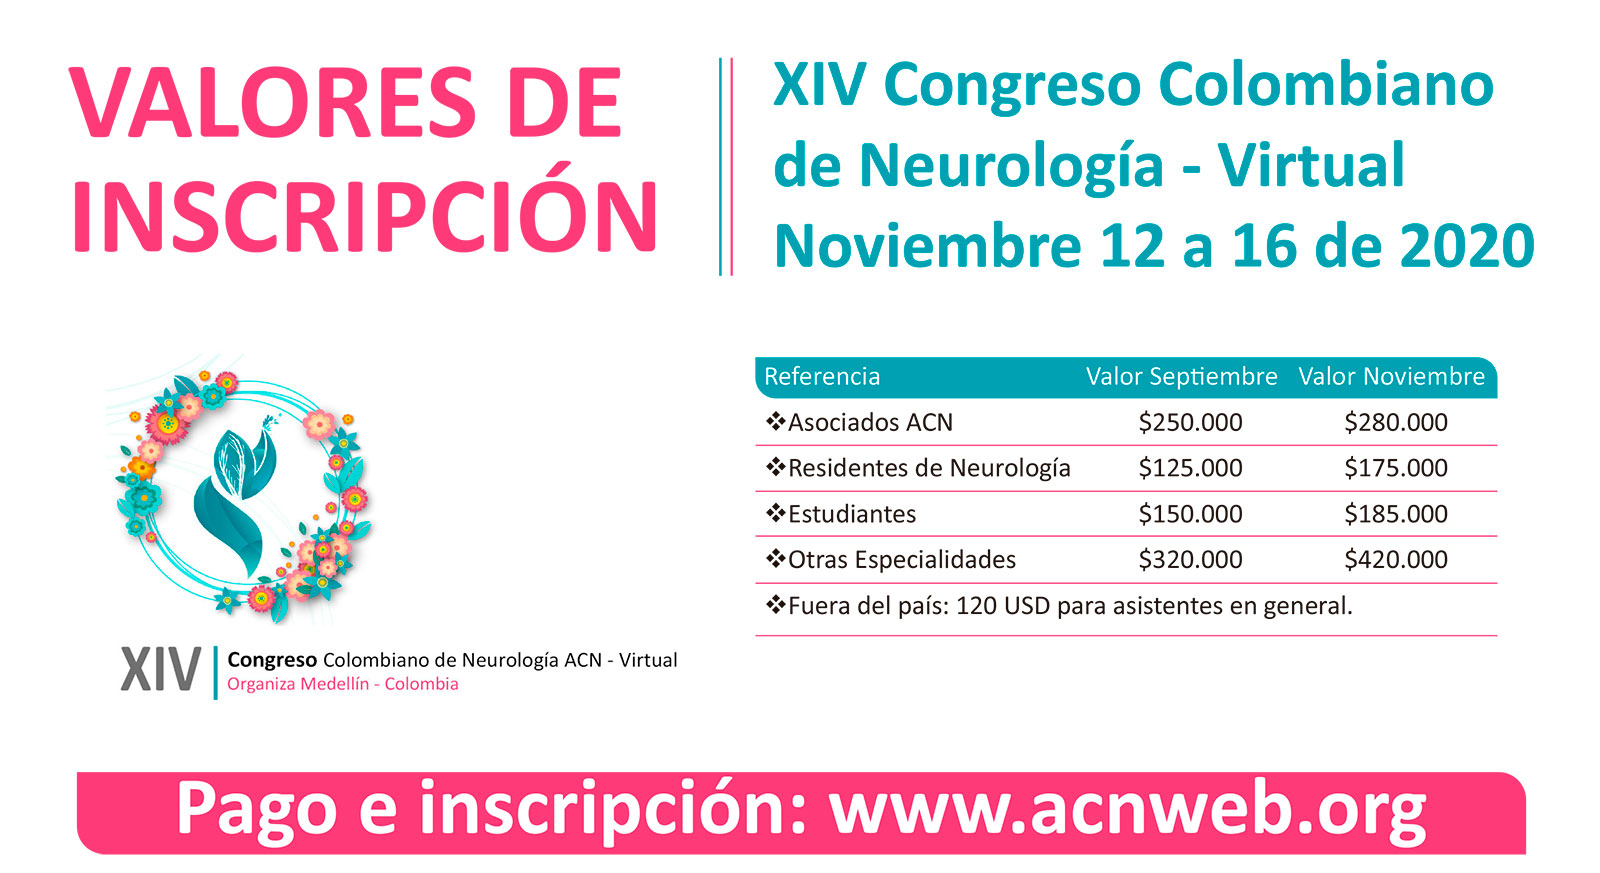 INSCRIPCIONES XIV CONGRESO COLOMBIANO DE NEUROLOGÍA 2020 VIRTUAL